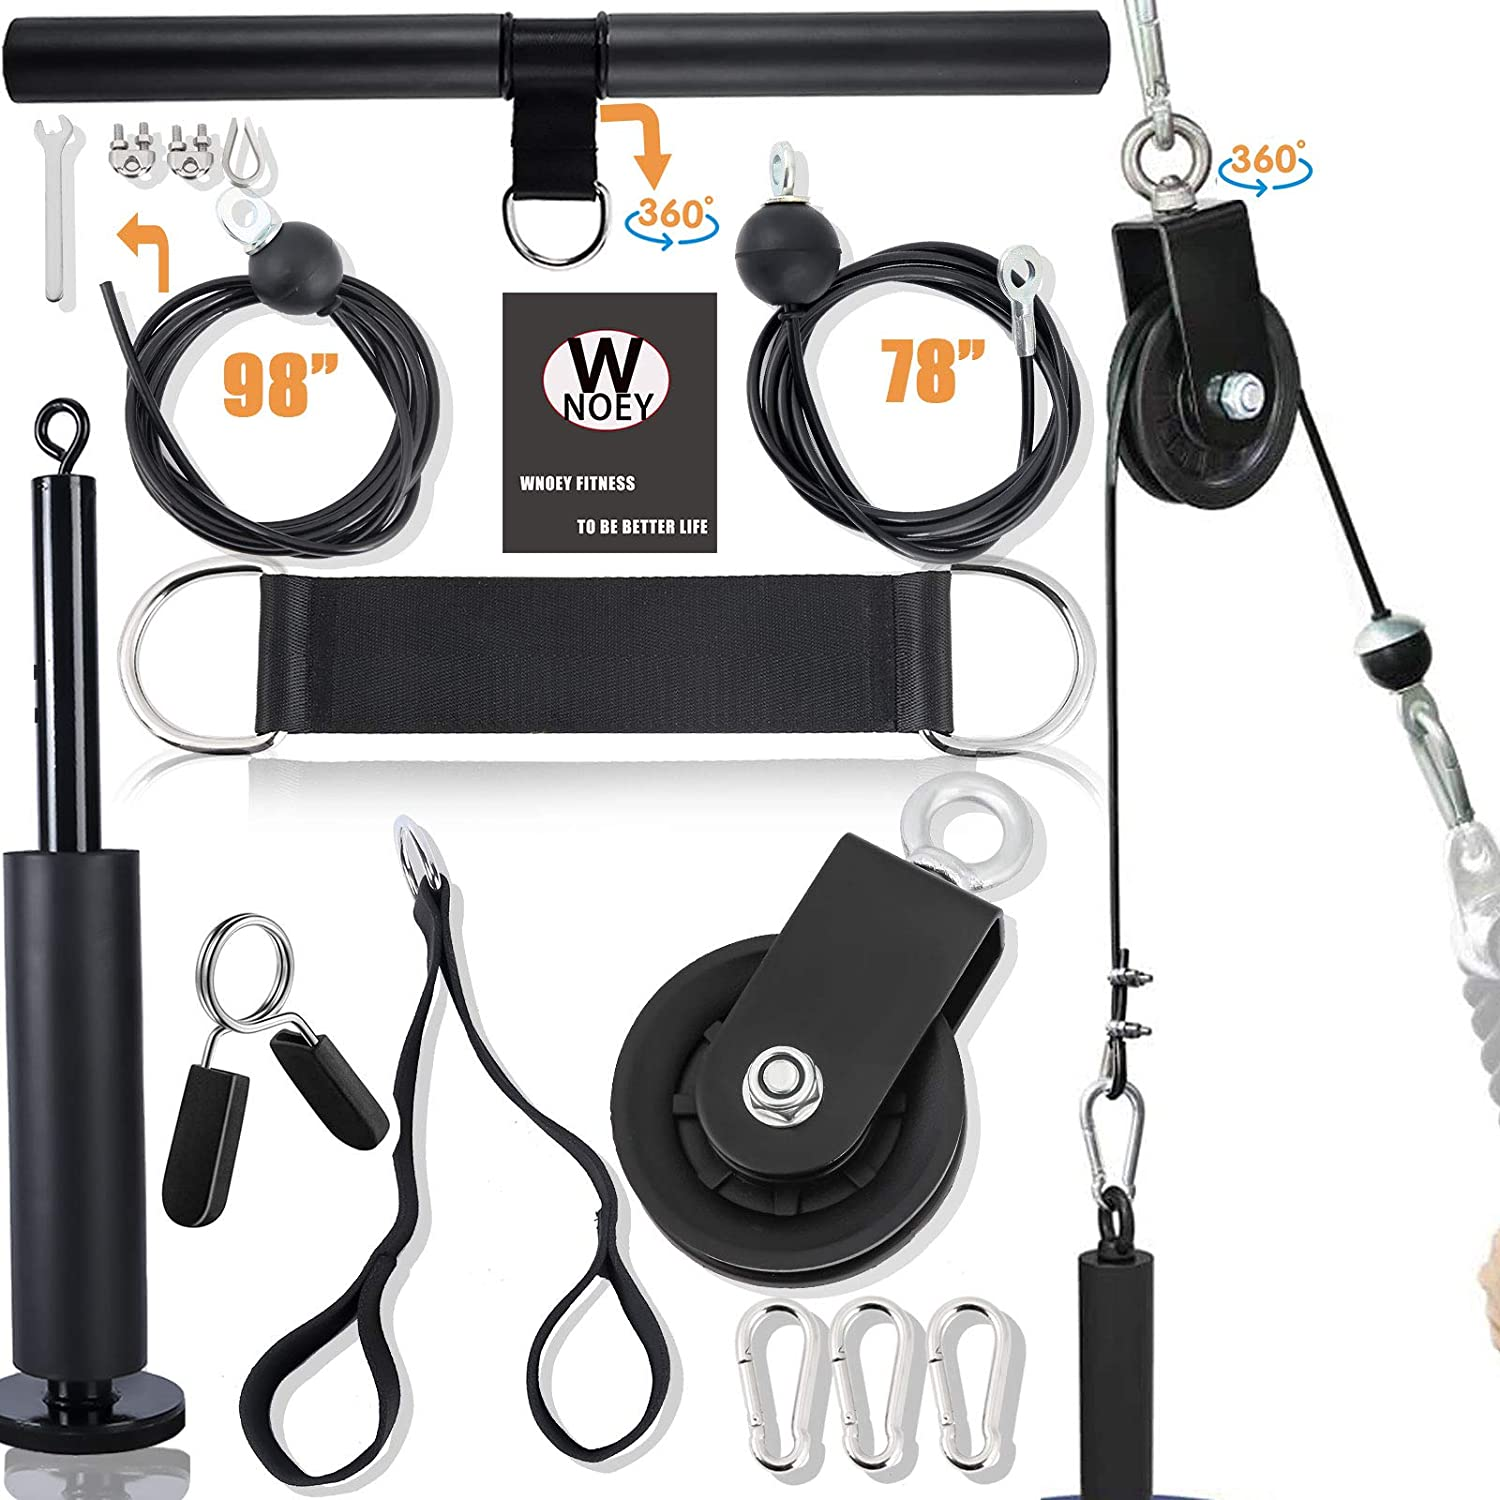 WNOEY Pulley System Gym, LAT Pulldown Attachments, Gym Equipment for Home, Cable Attachments for Gym, Cable Pulley Attachments for Gym, Home Gym Equipment